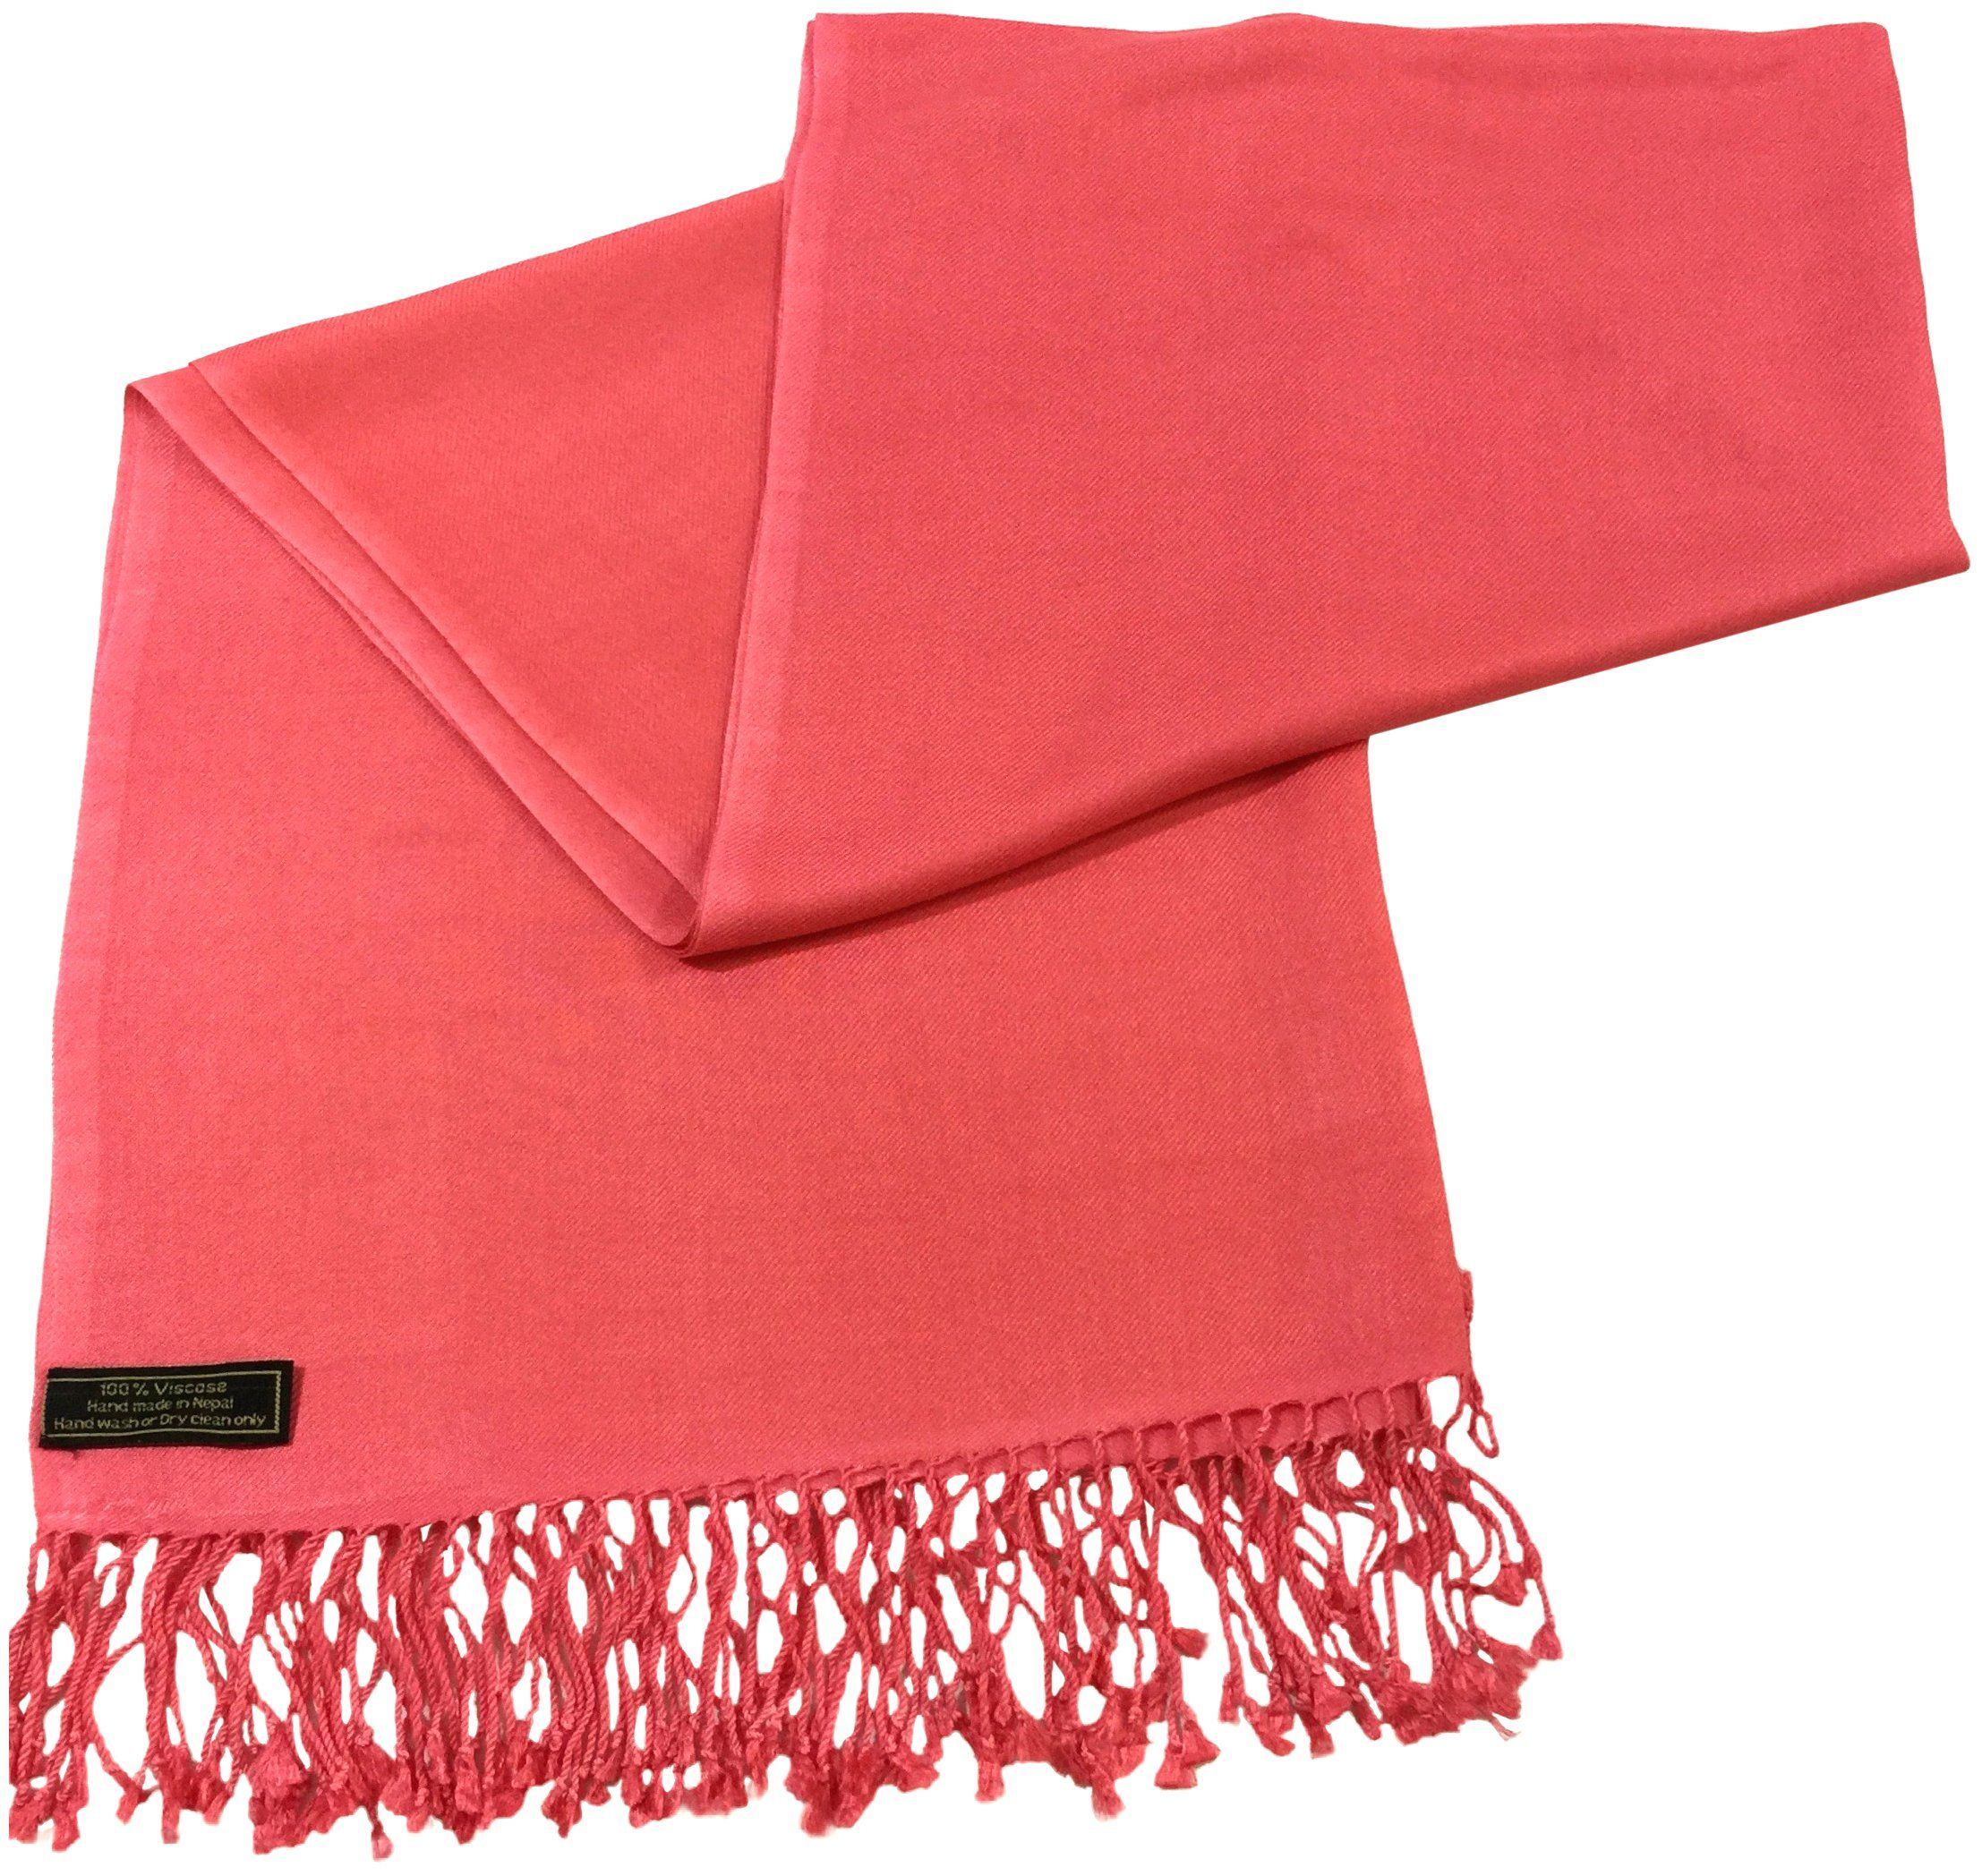 Coral pink solid color design nepalese shawl pashmina scarf wrap cj